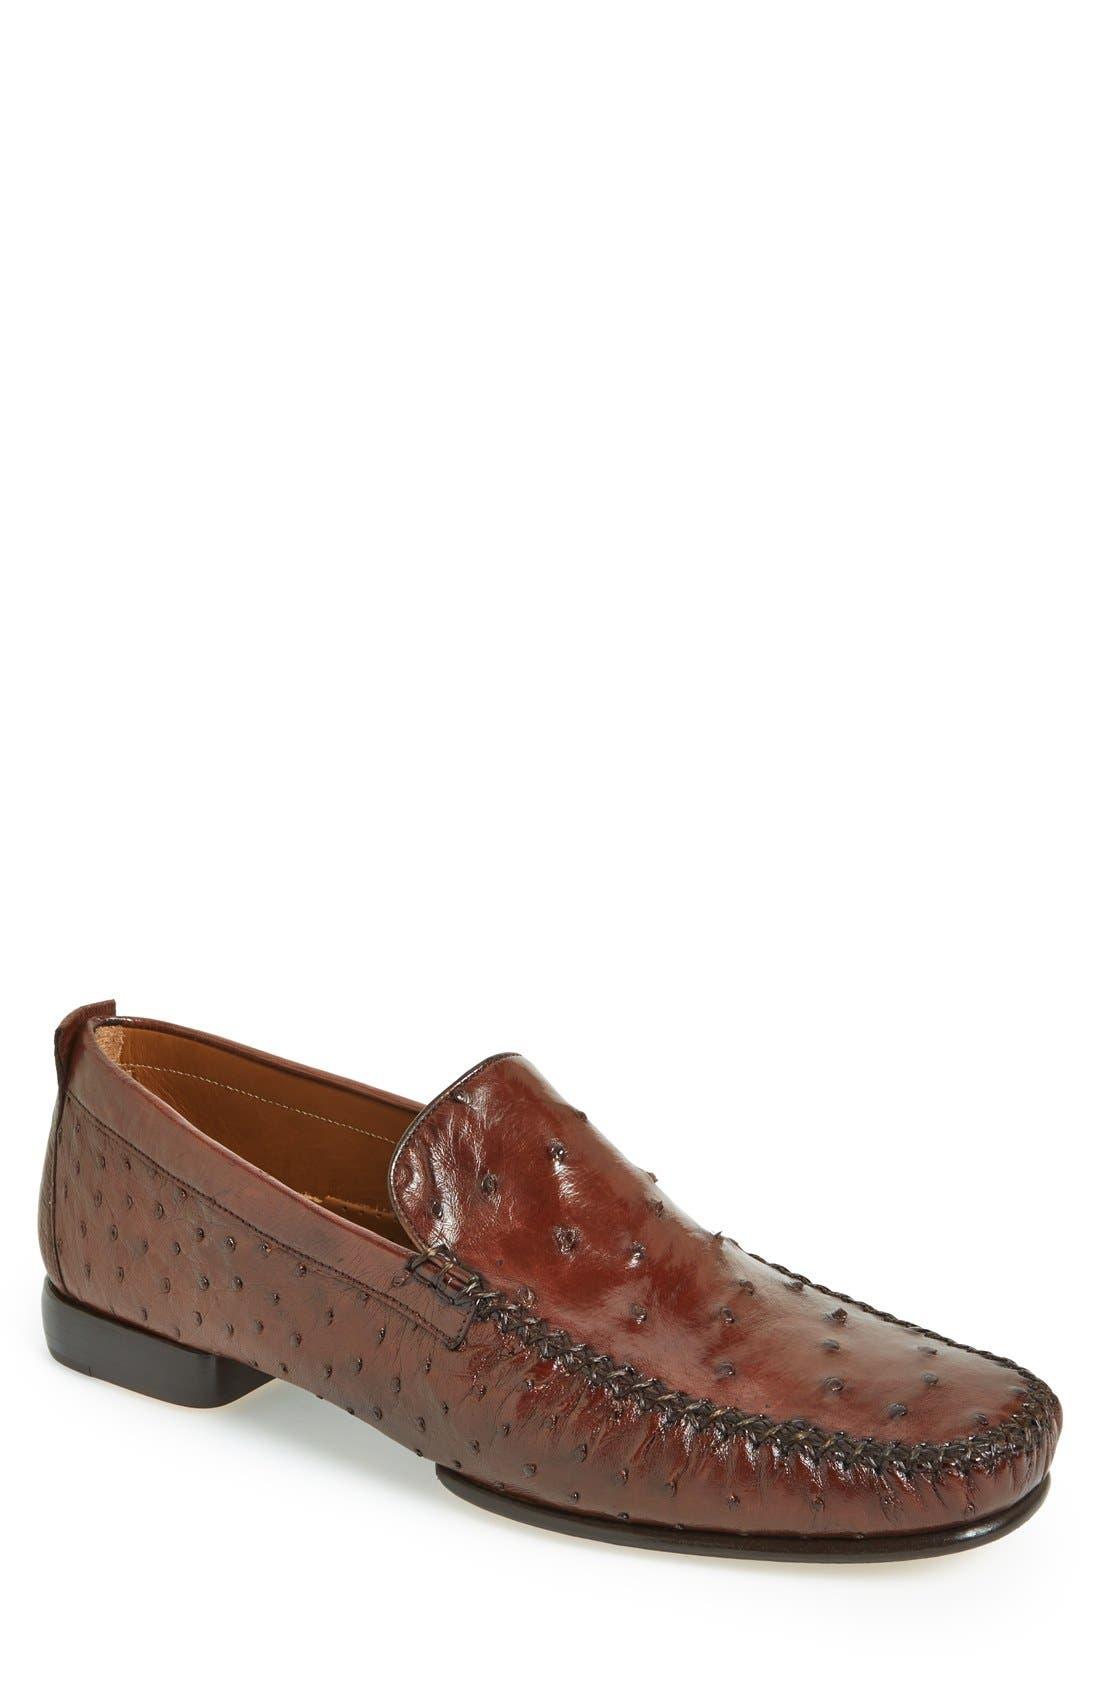 'Rollini' Ostrich Leather Loafer,                             Main thumbnail 1, color,                             TOBACCO